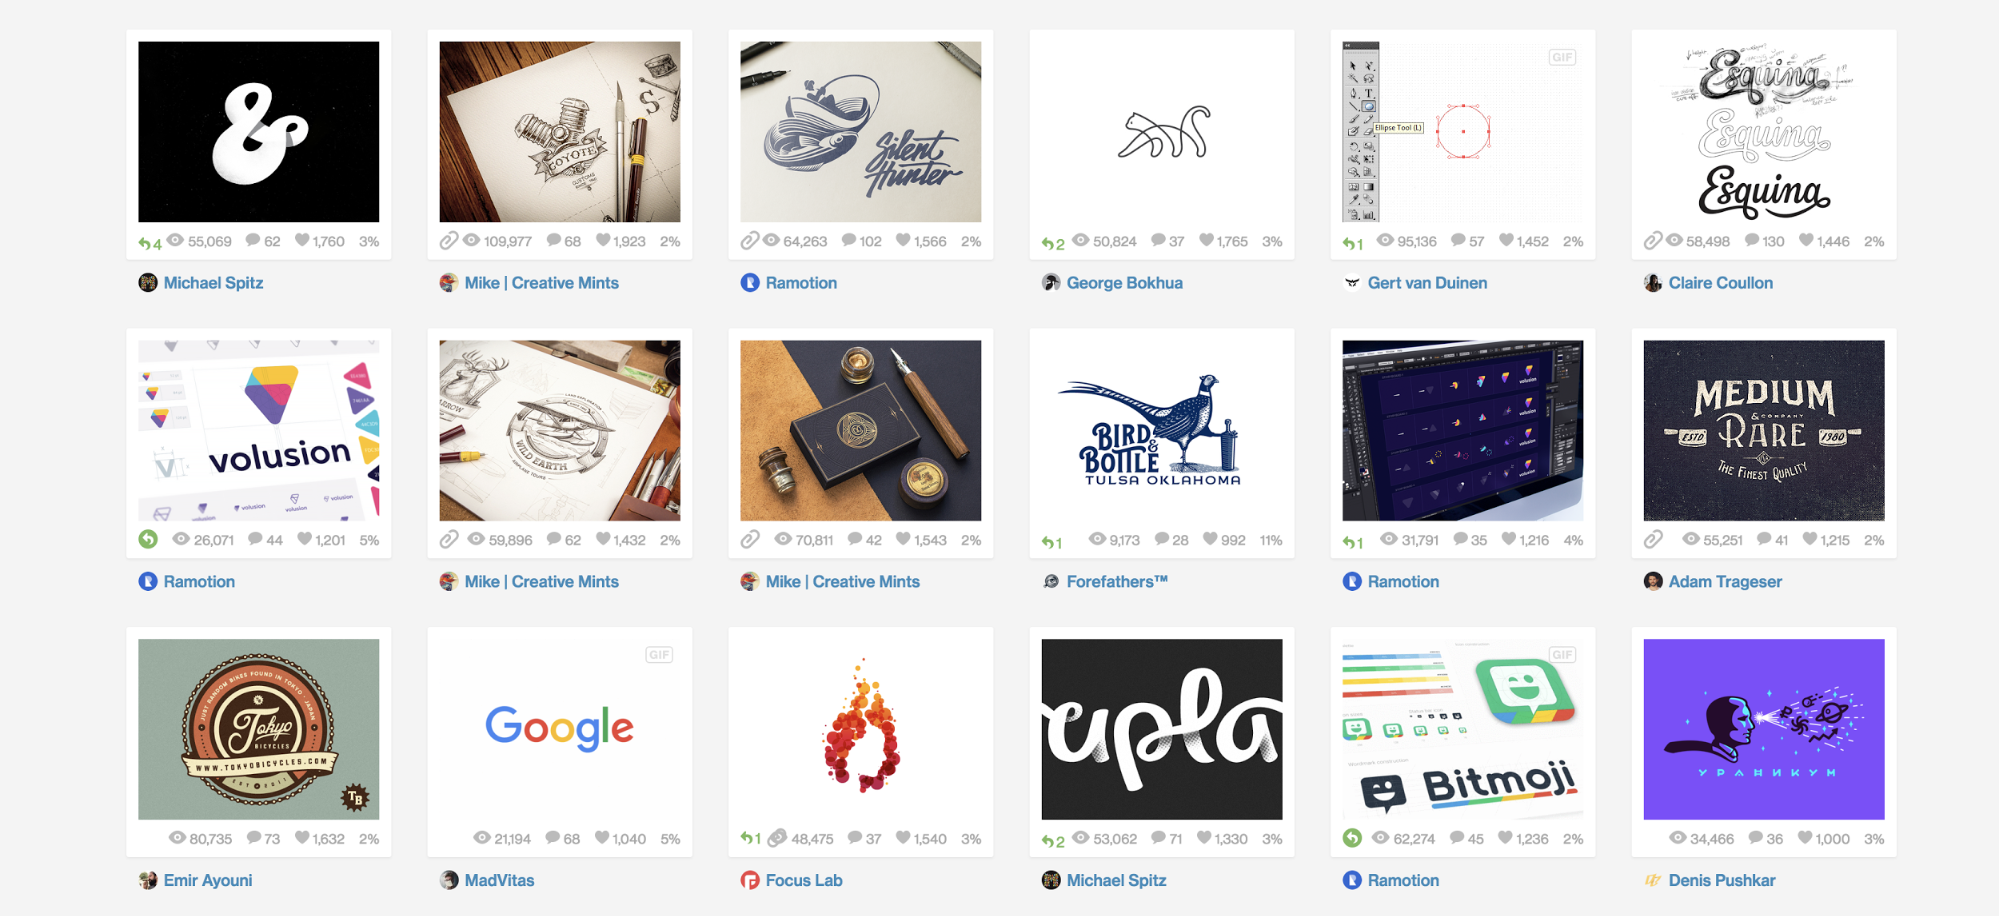 dribbble used for visual research and inspiration for logo design